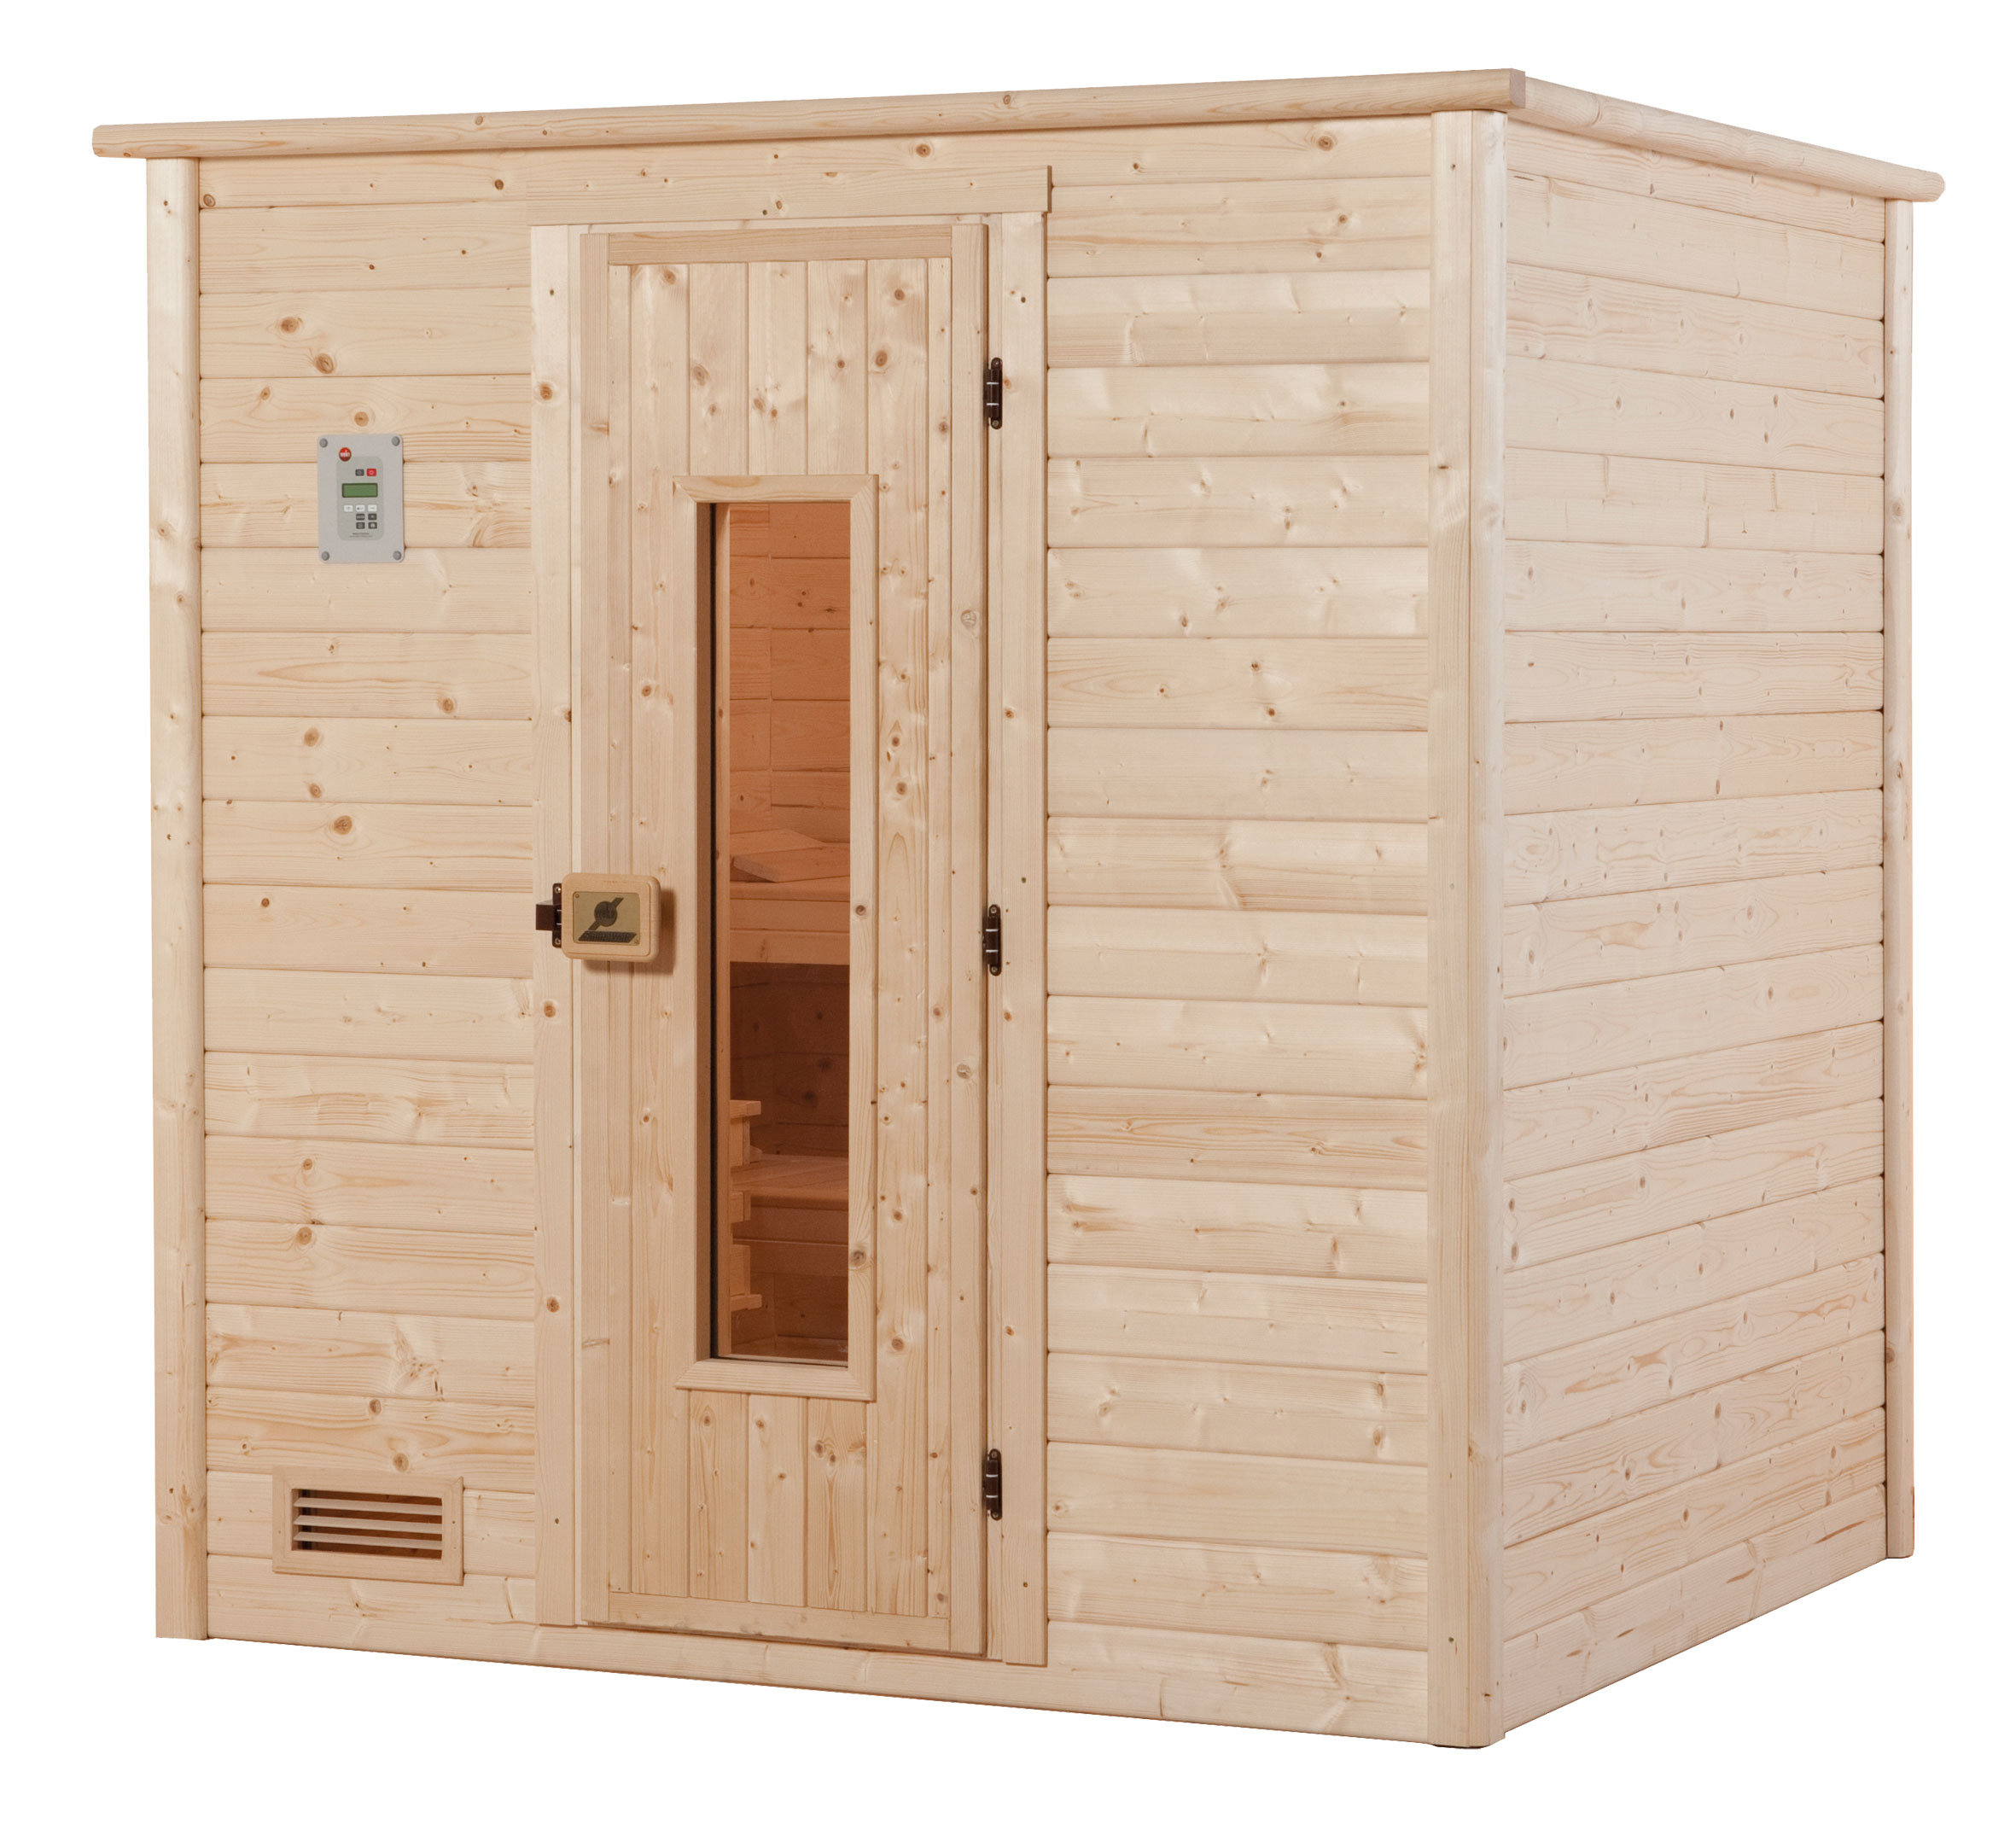 weka sauna 530 ht gr 1 massivholzsauna ohne saunaofen bei. Black Bedroom Furniture Sets. Home Design Ideas